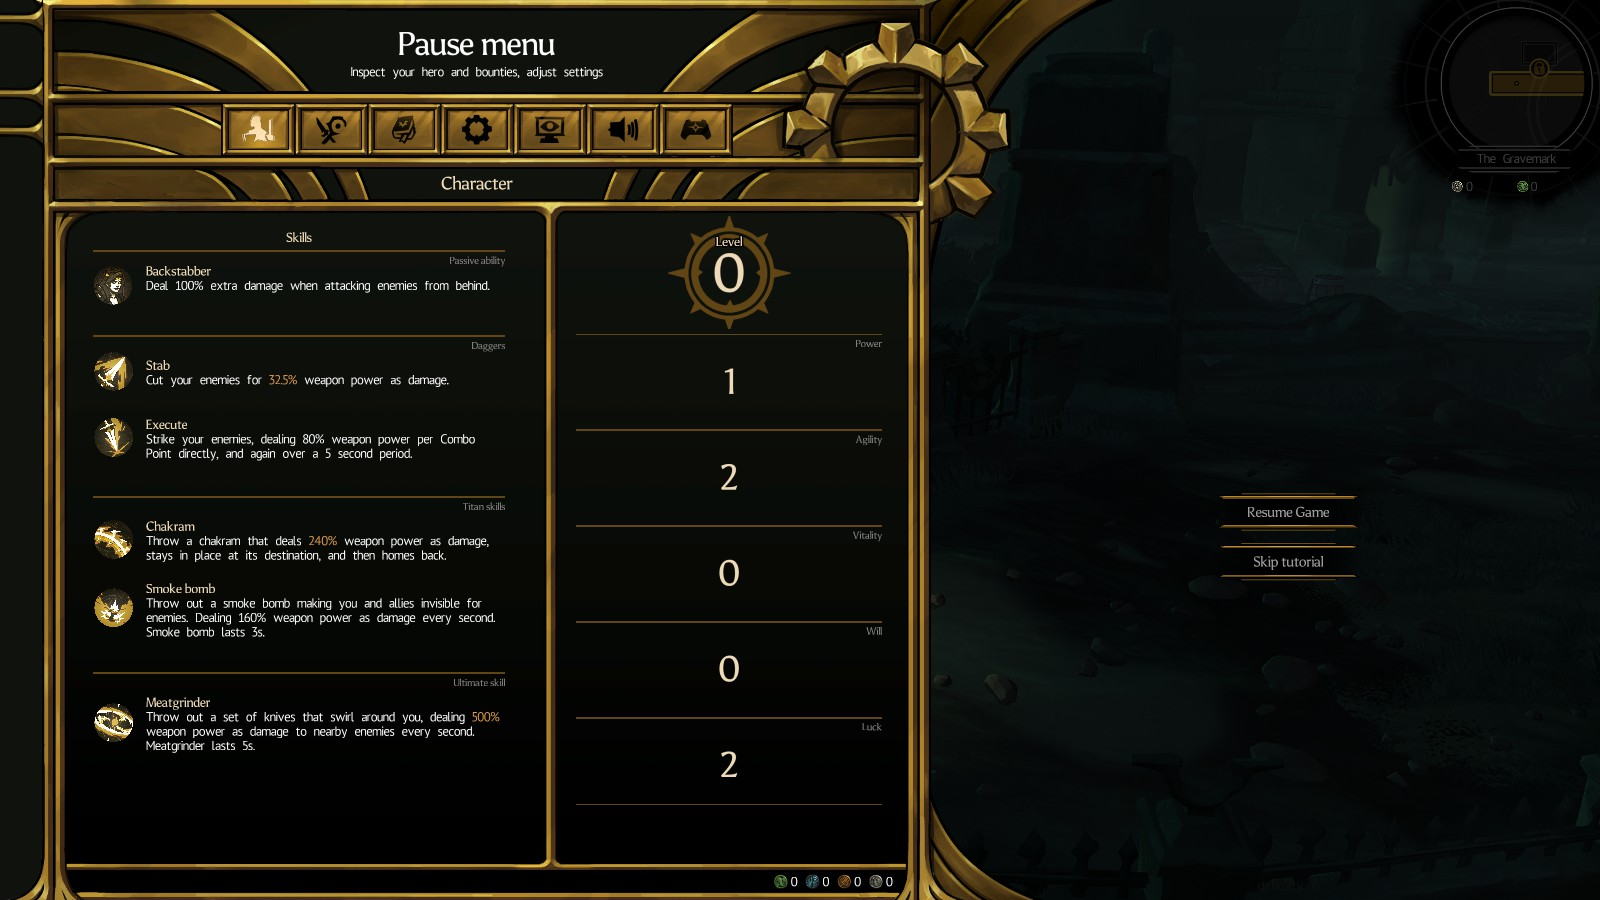 Blightbound's attribute system on the pause menu.